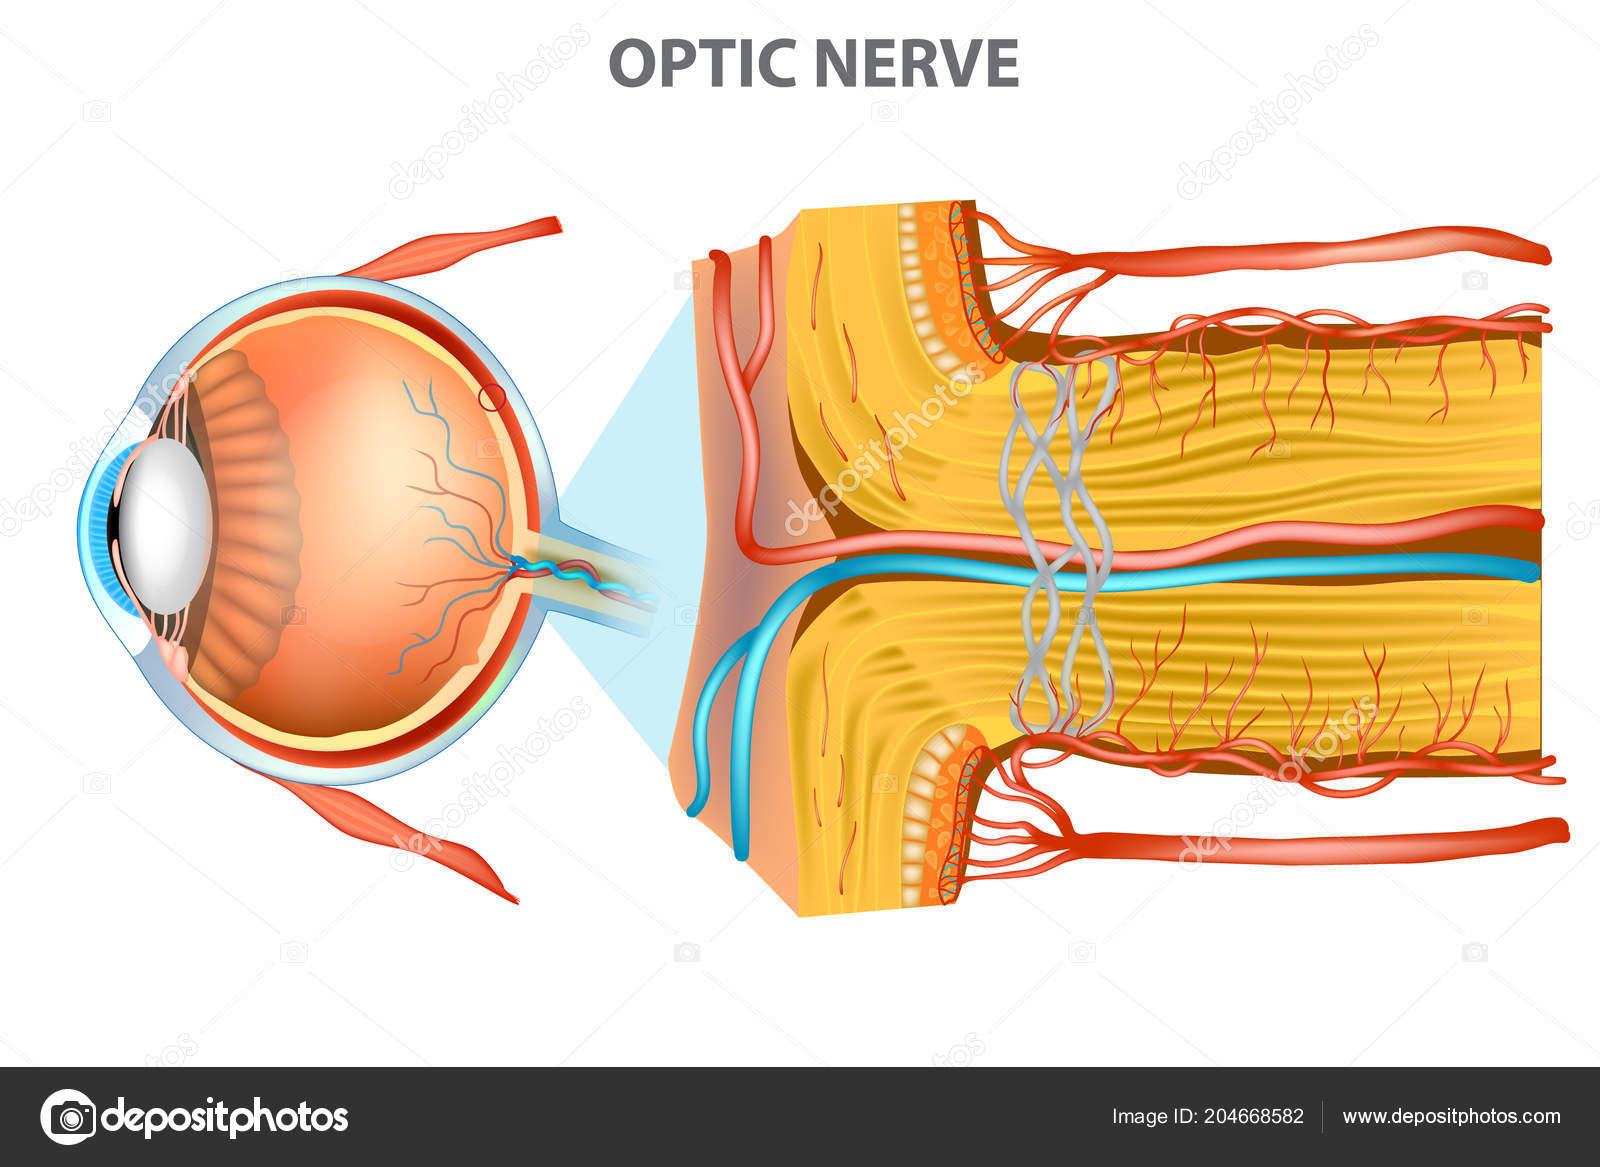 Optic Nerve Anatomy Eye — Stock Vector © Sakurra #204668582